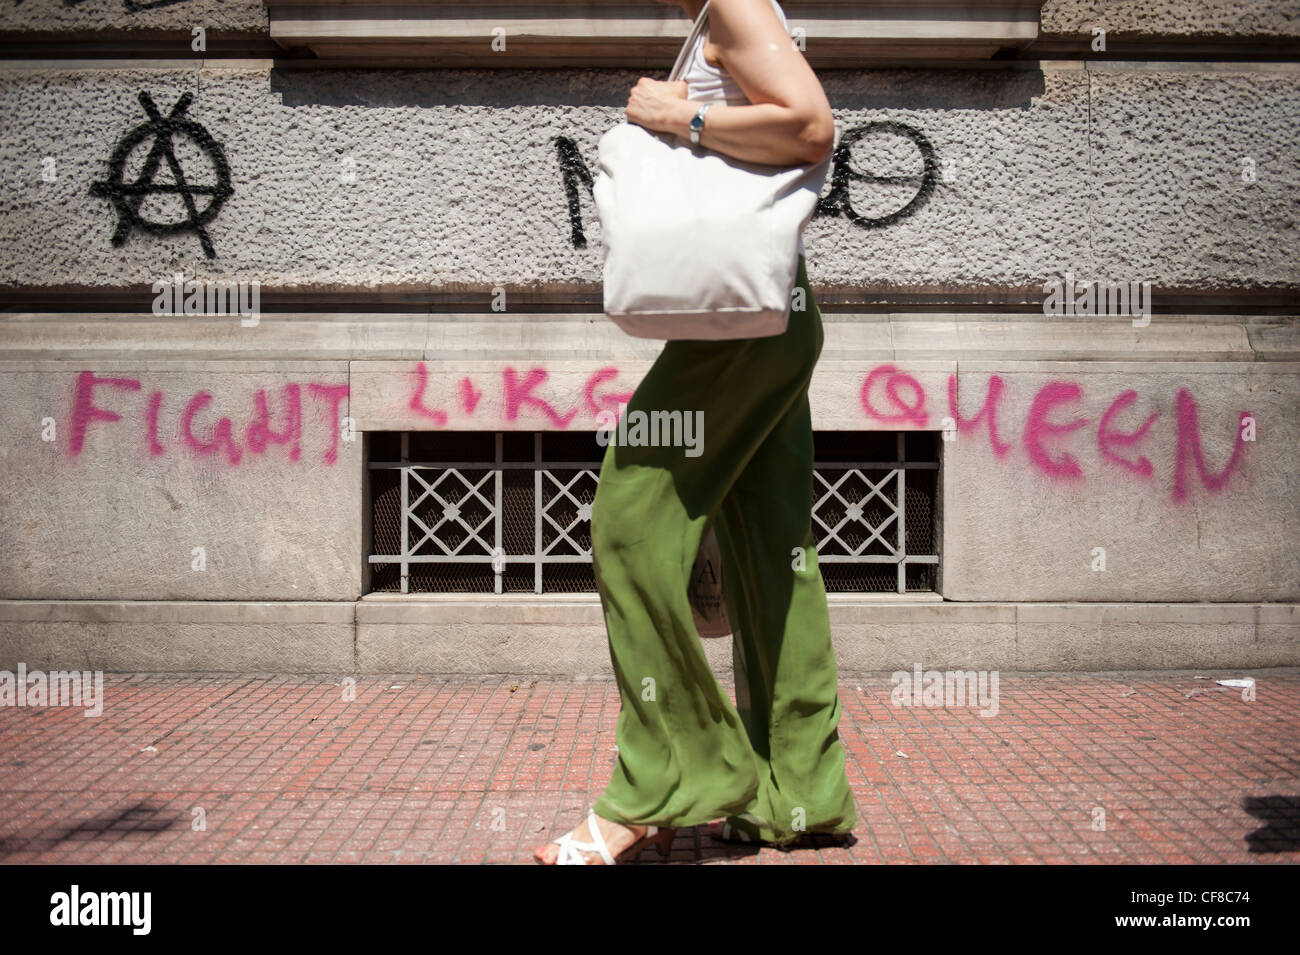 A woman walks in Panepistimiou Str, central Athens by a graffiti writing 'Fight like a Queen' - Stock Image